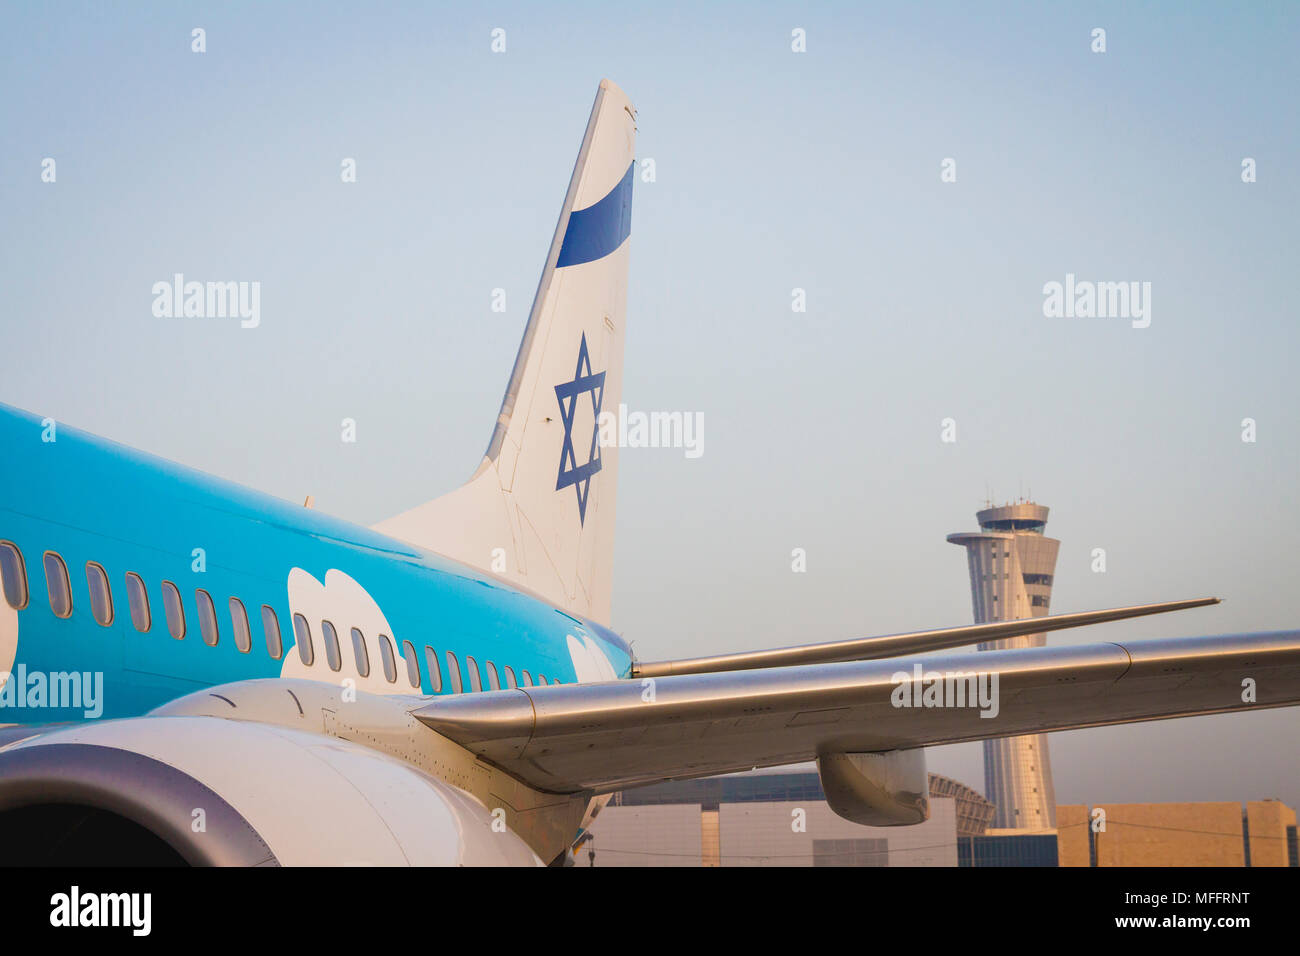 Tail Plane Stock Photos & Tail Plane Stock Images - Alamy